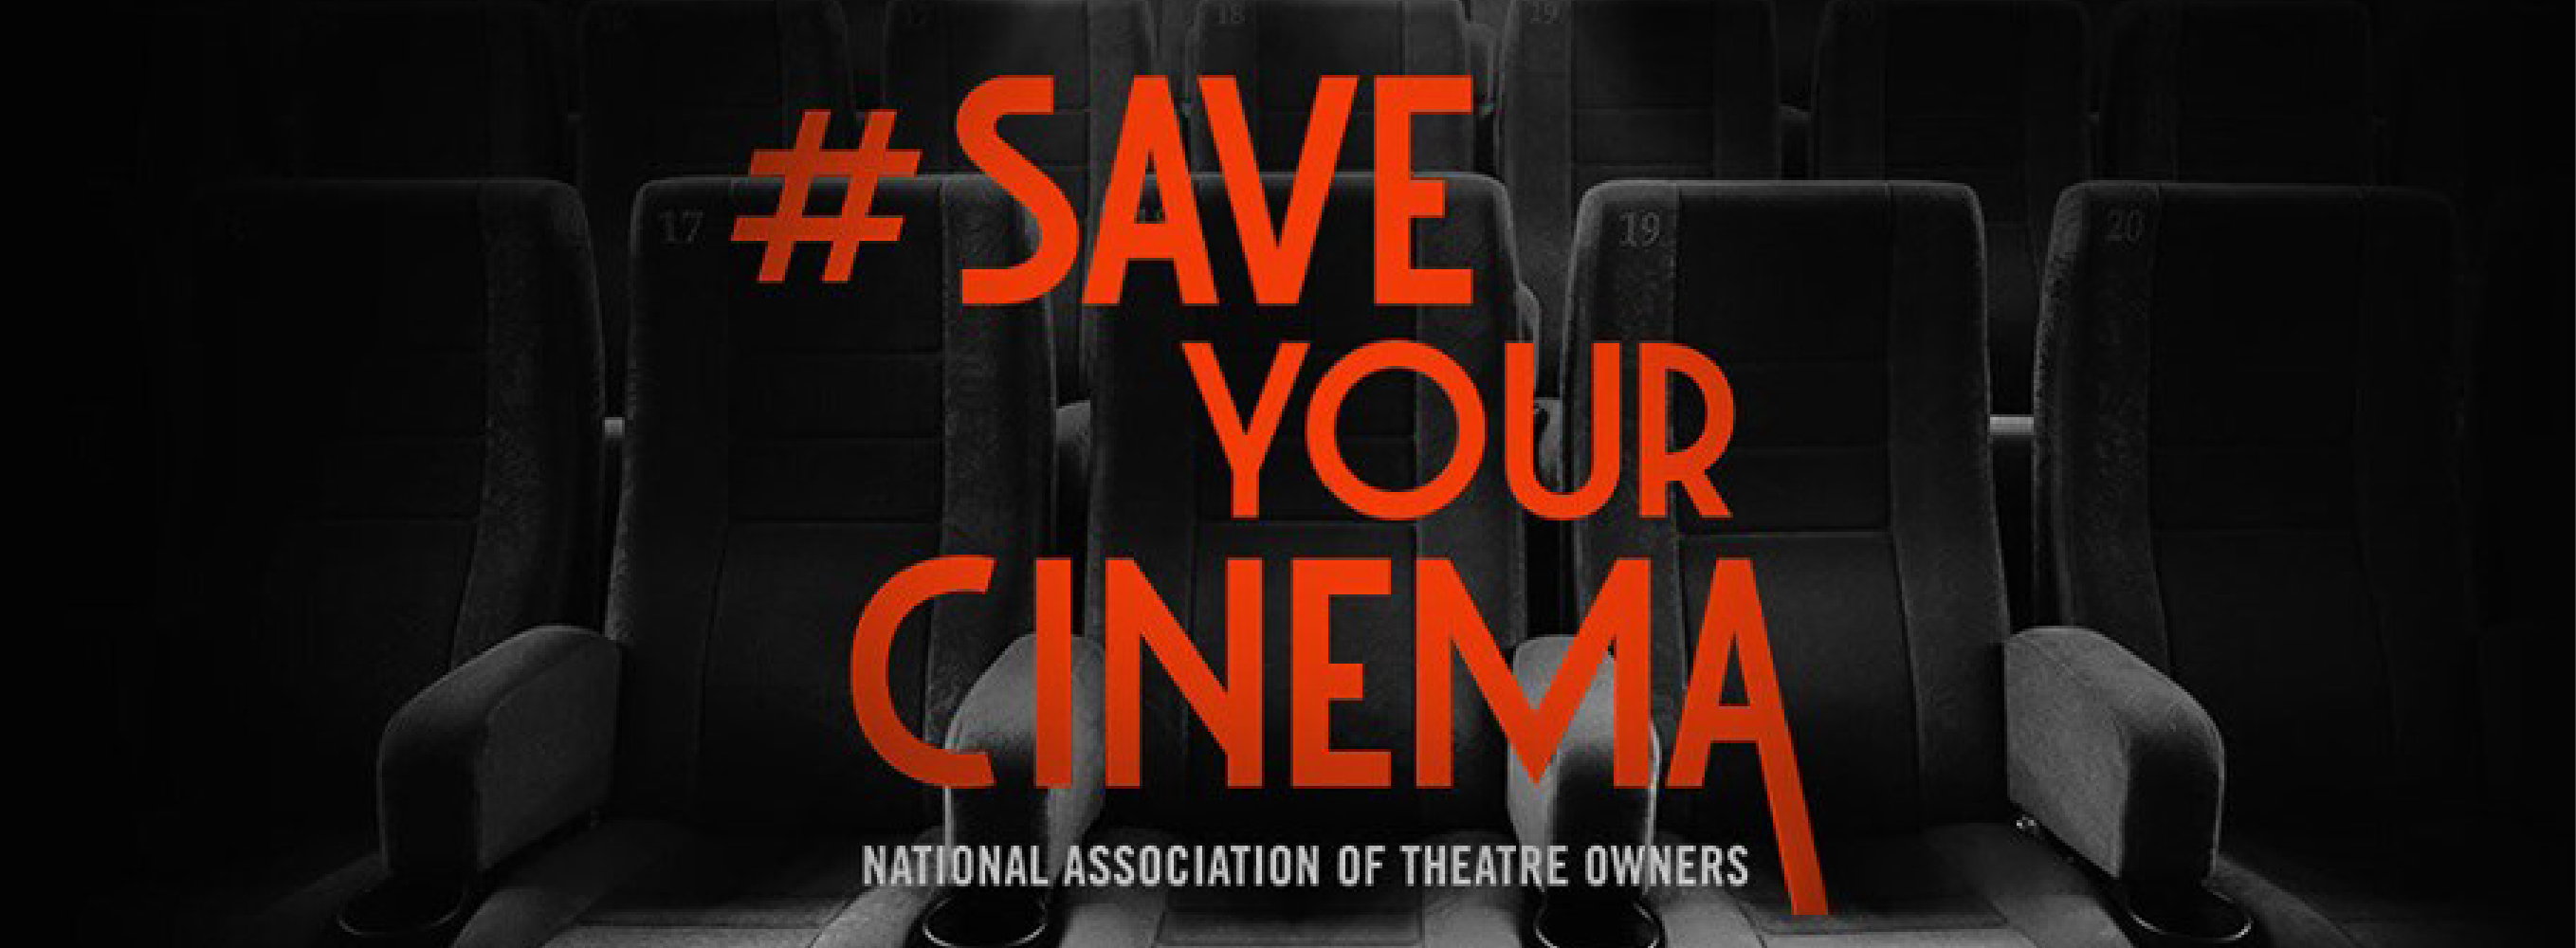 Click here to do your part to help cinemas in need nationwide.